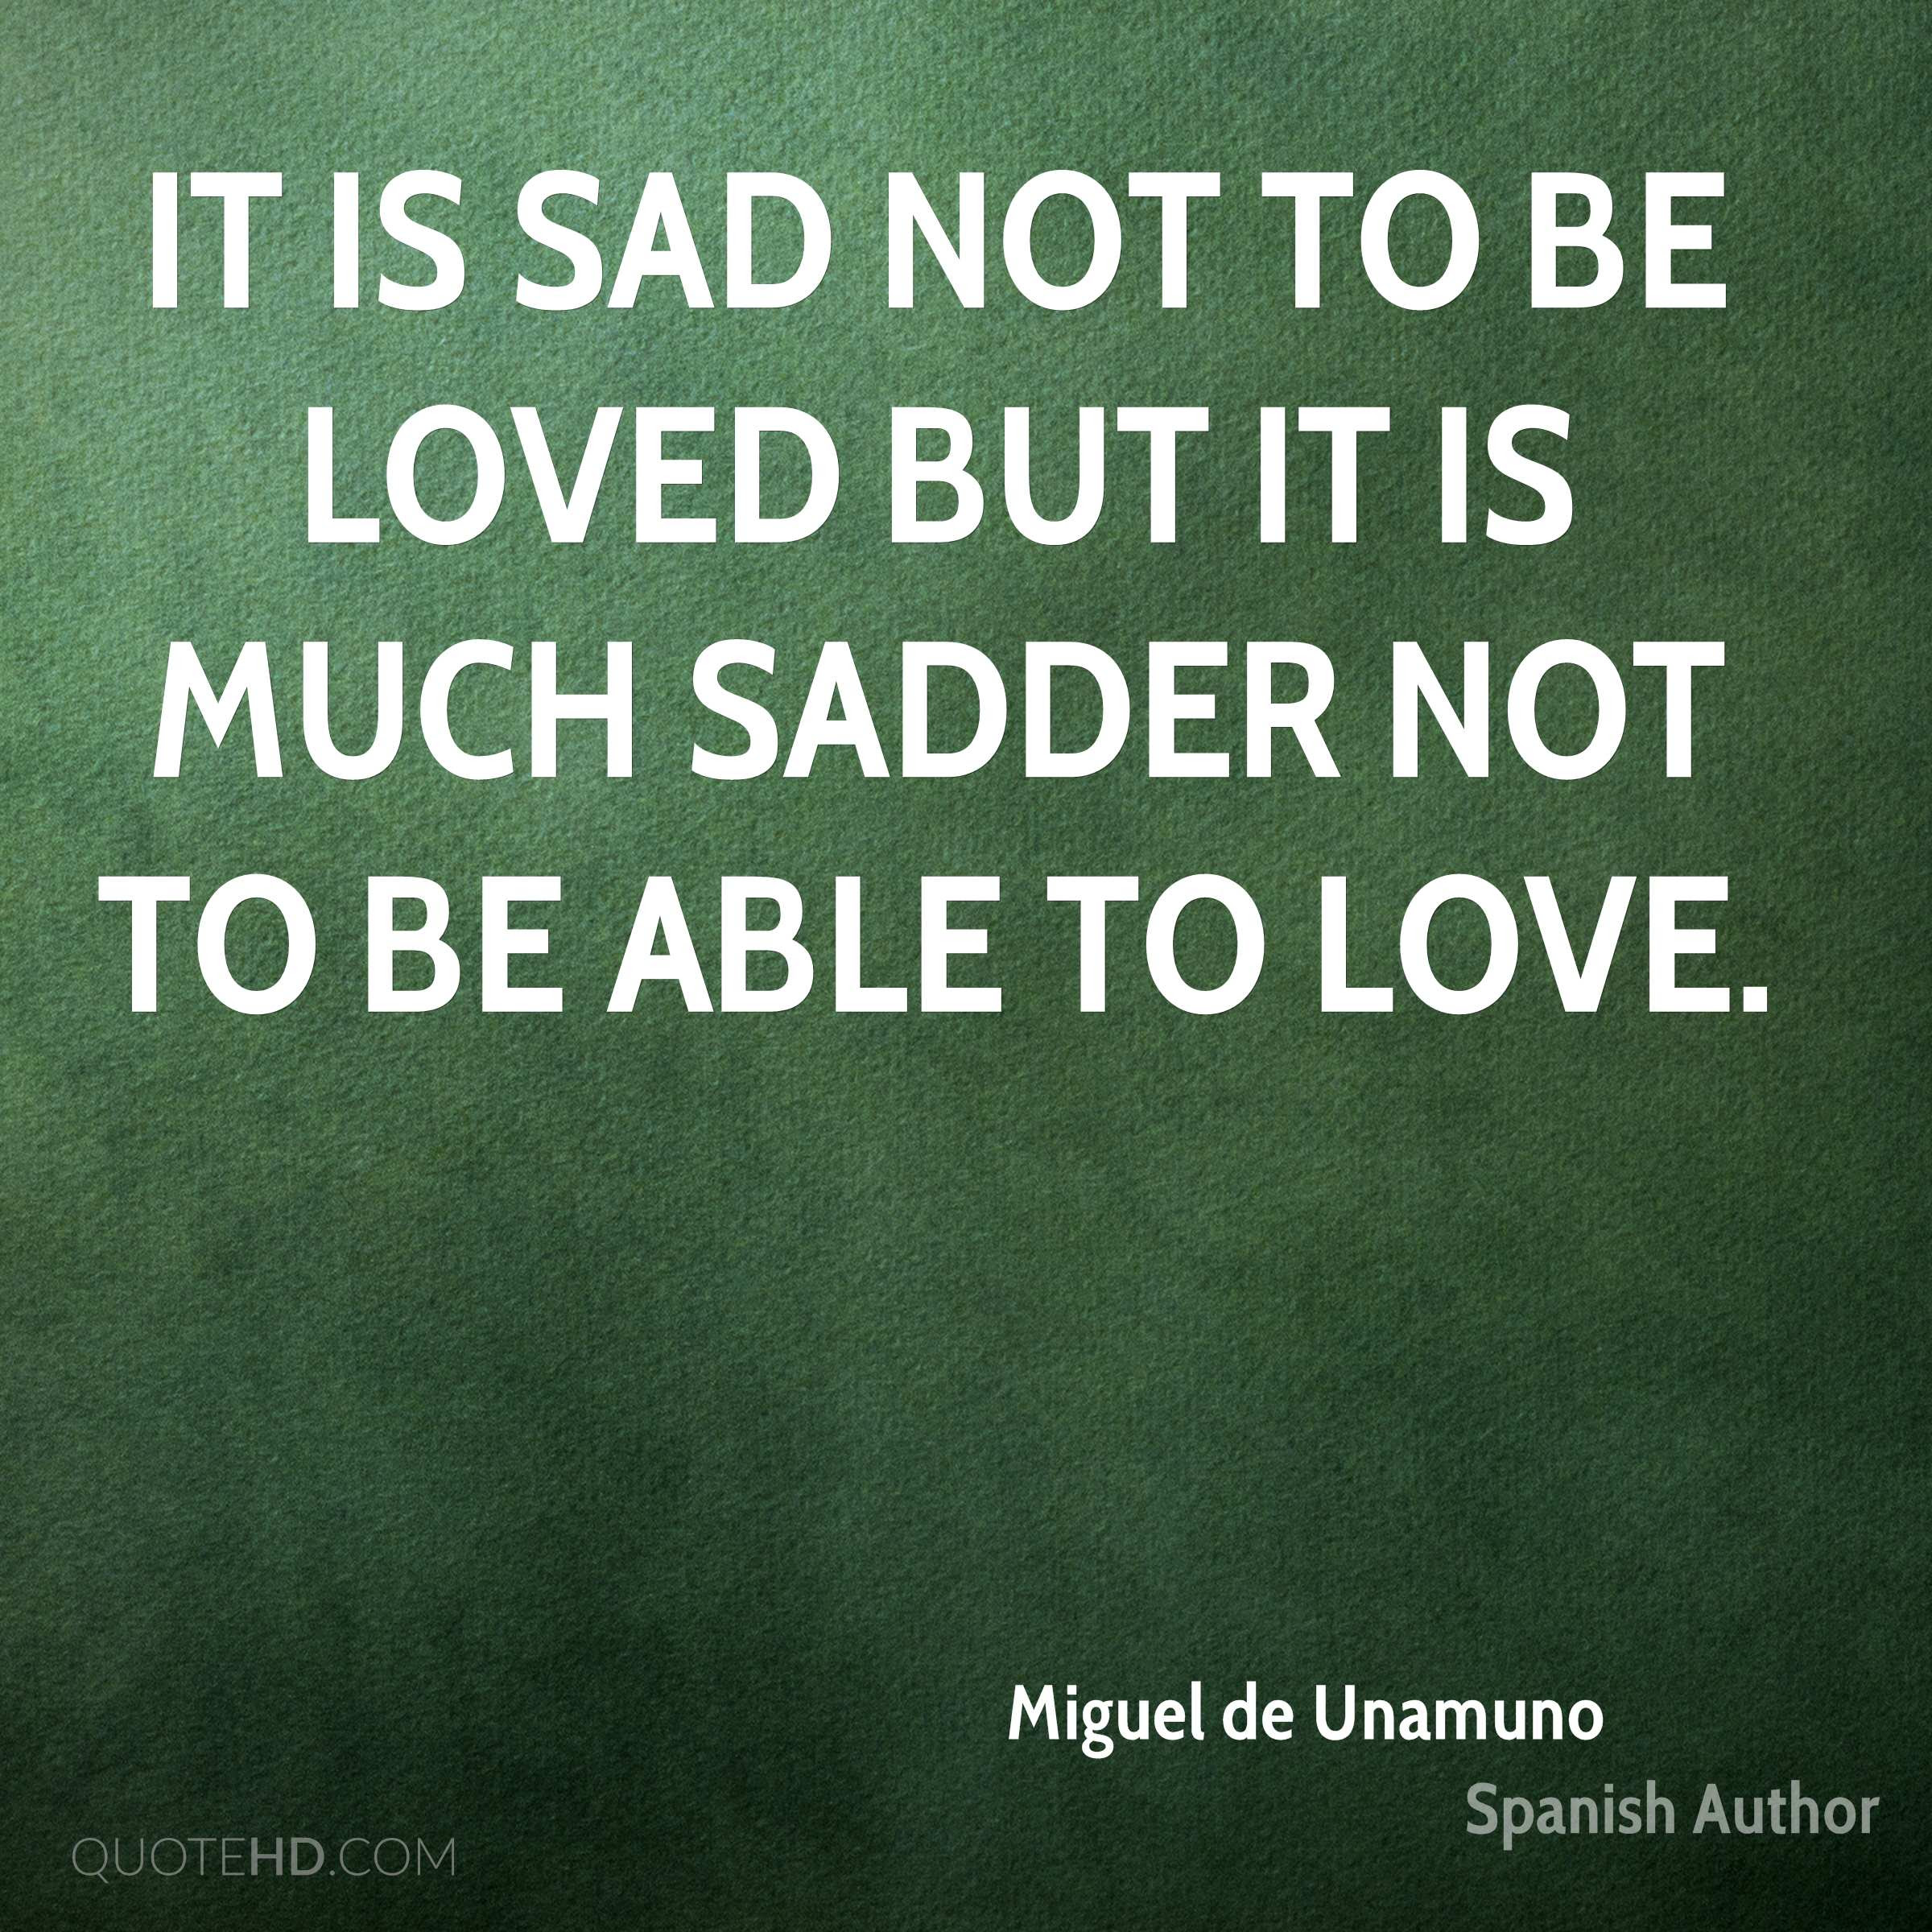 It is sad not to be loved but it is much sadder not to be able